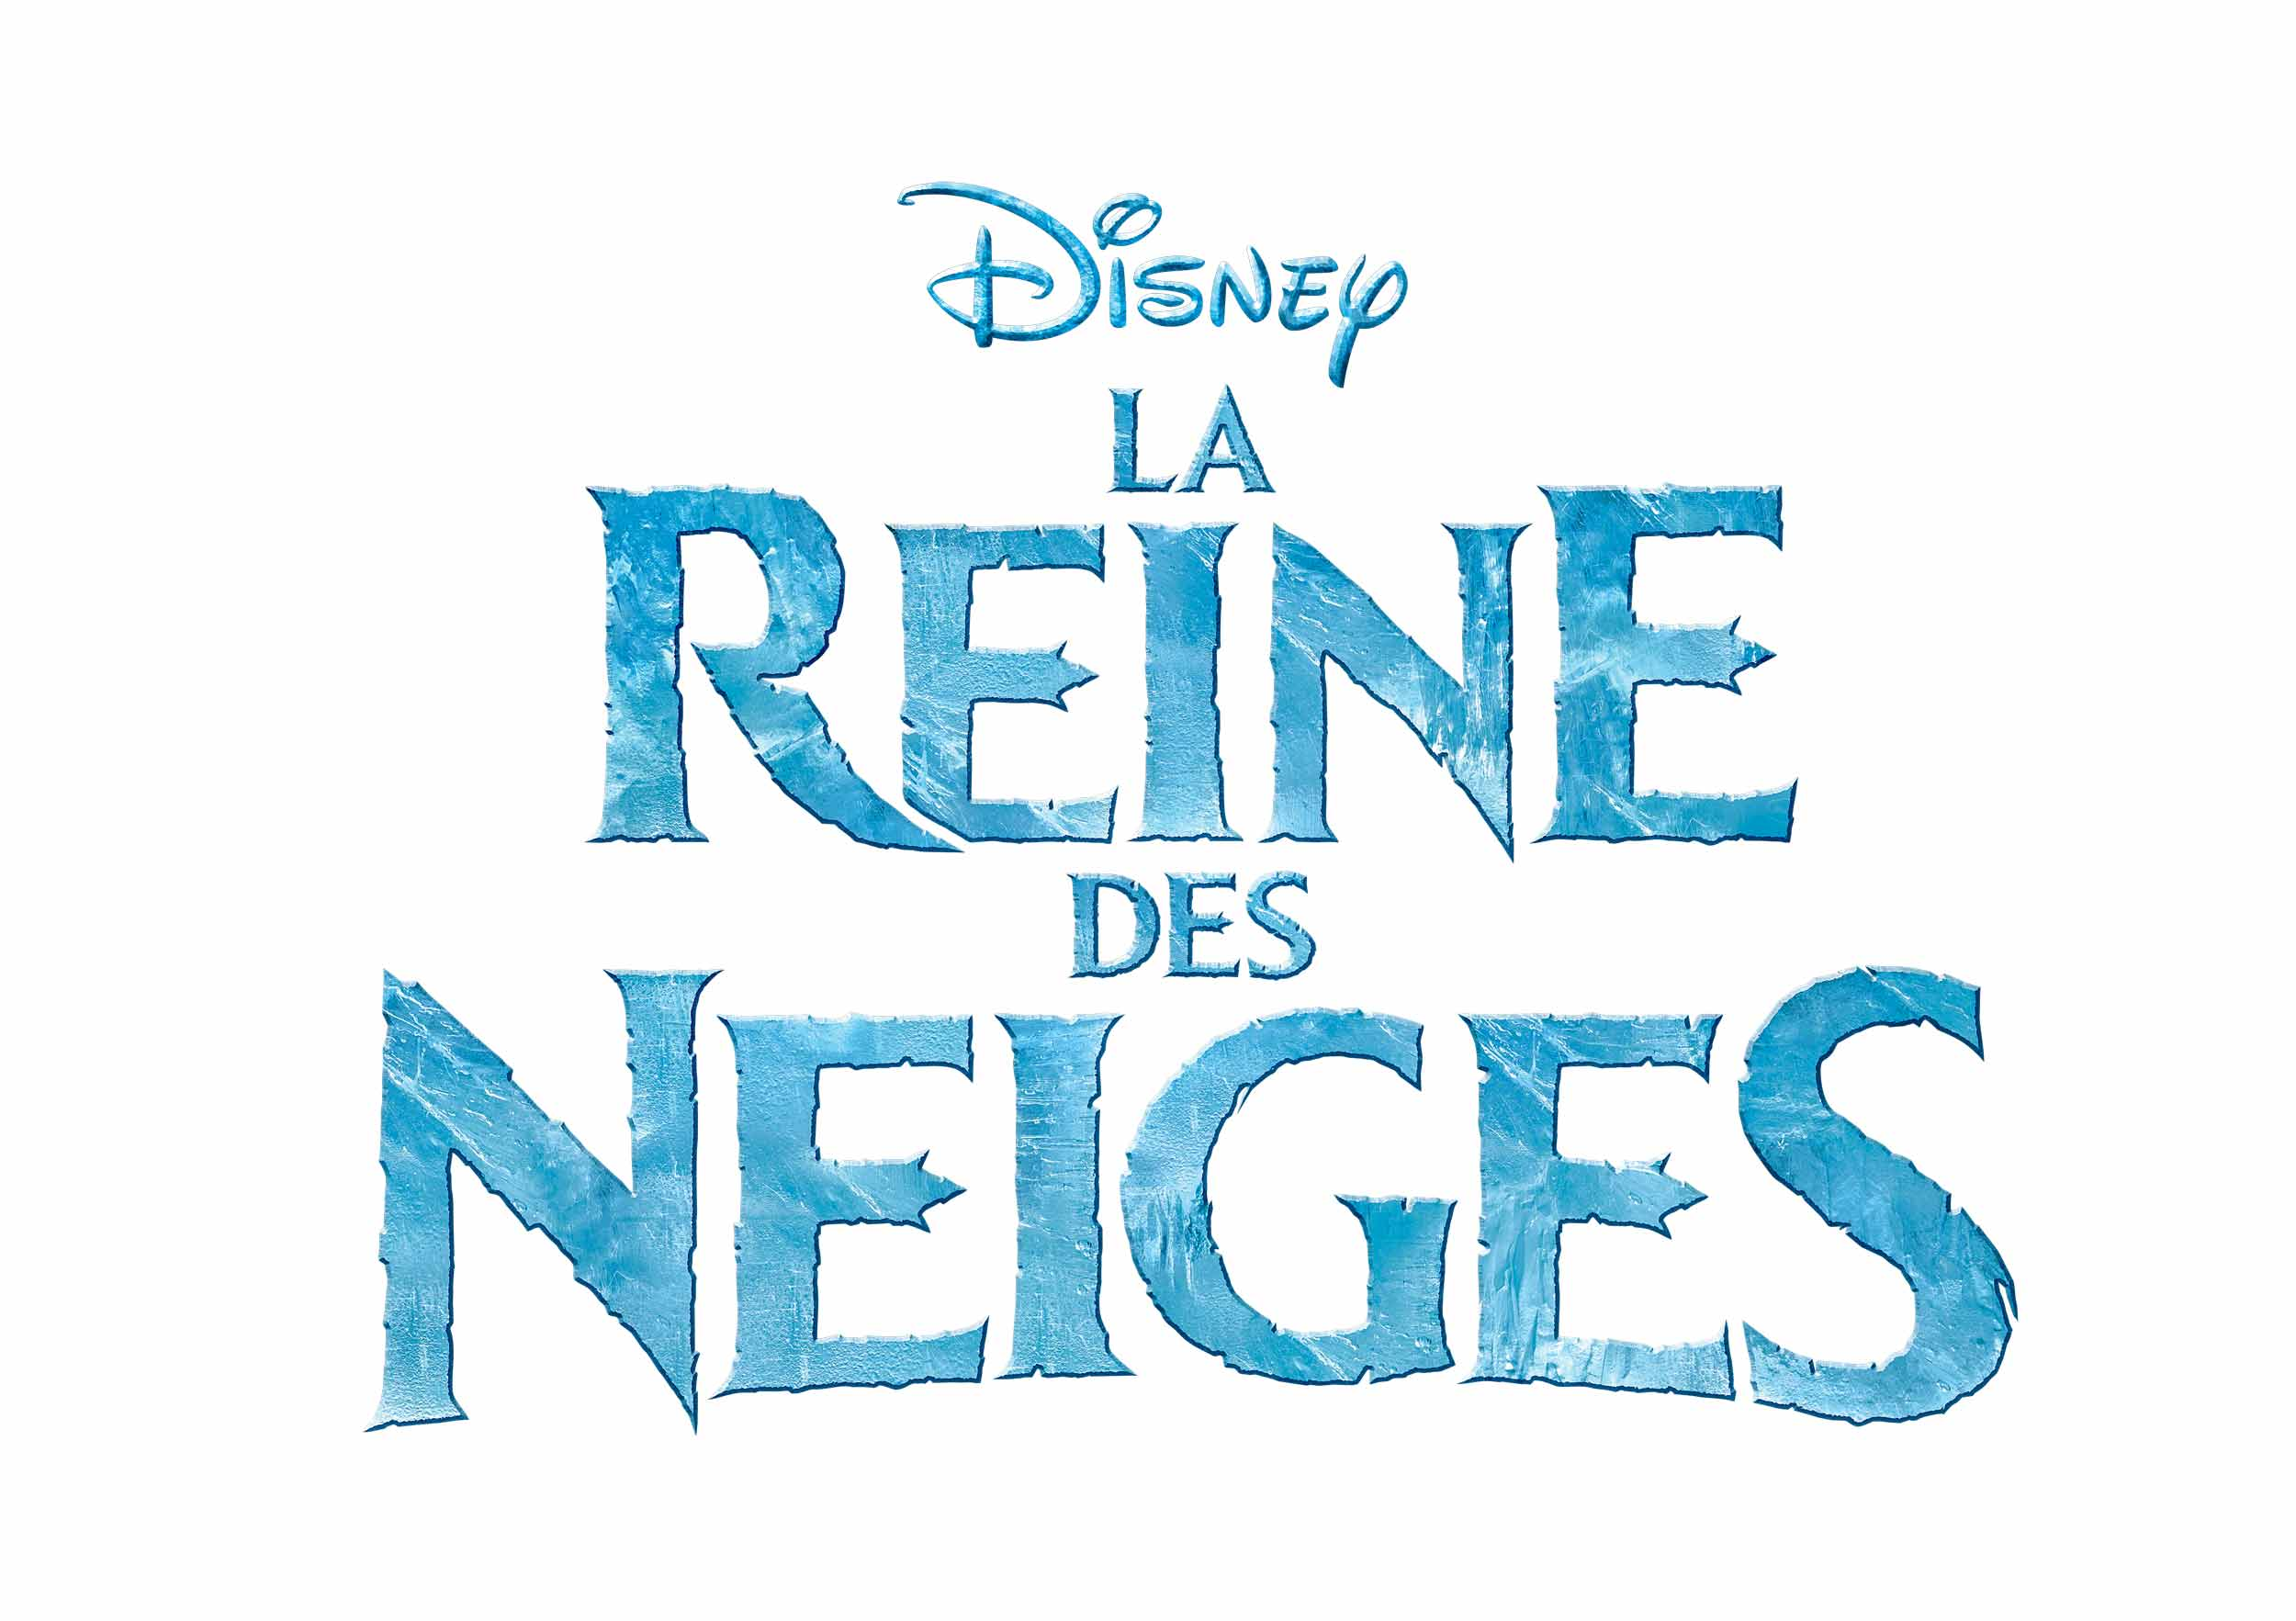 concours disney la reine des neiges dvd gagner new kids on the geek. Black Bedroom Furniture Sets. Home Design Ideas